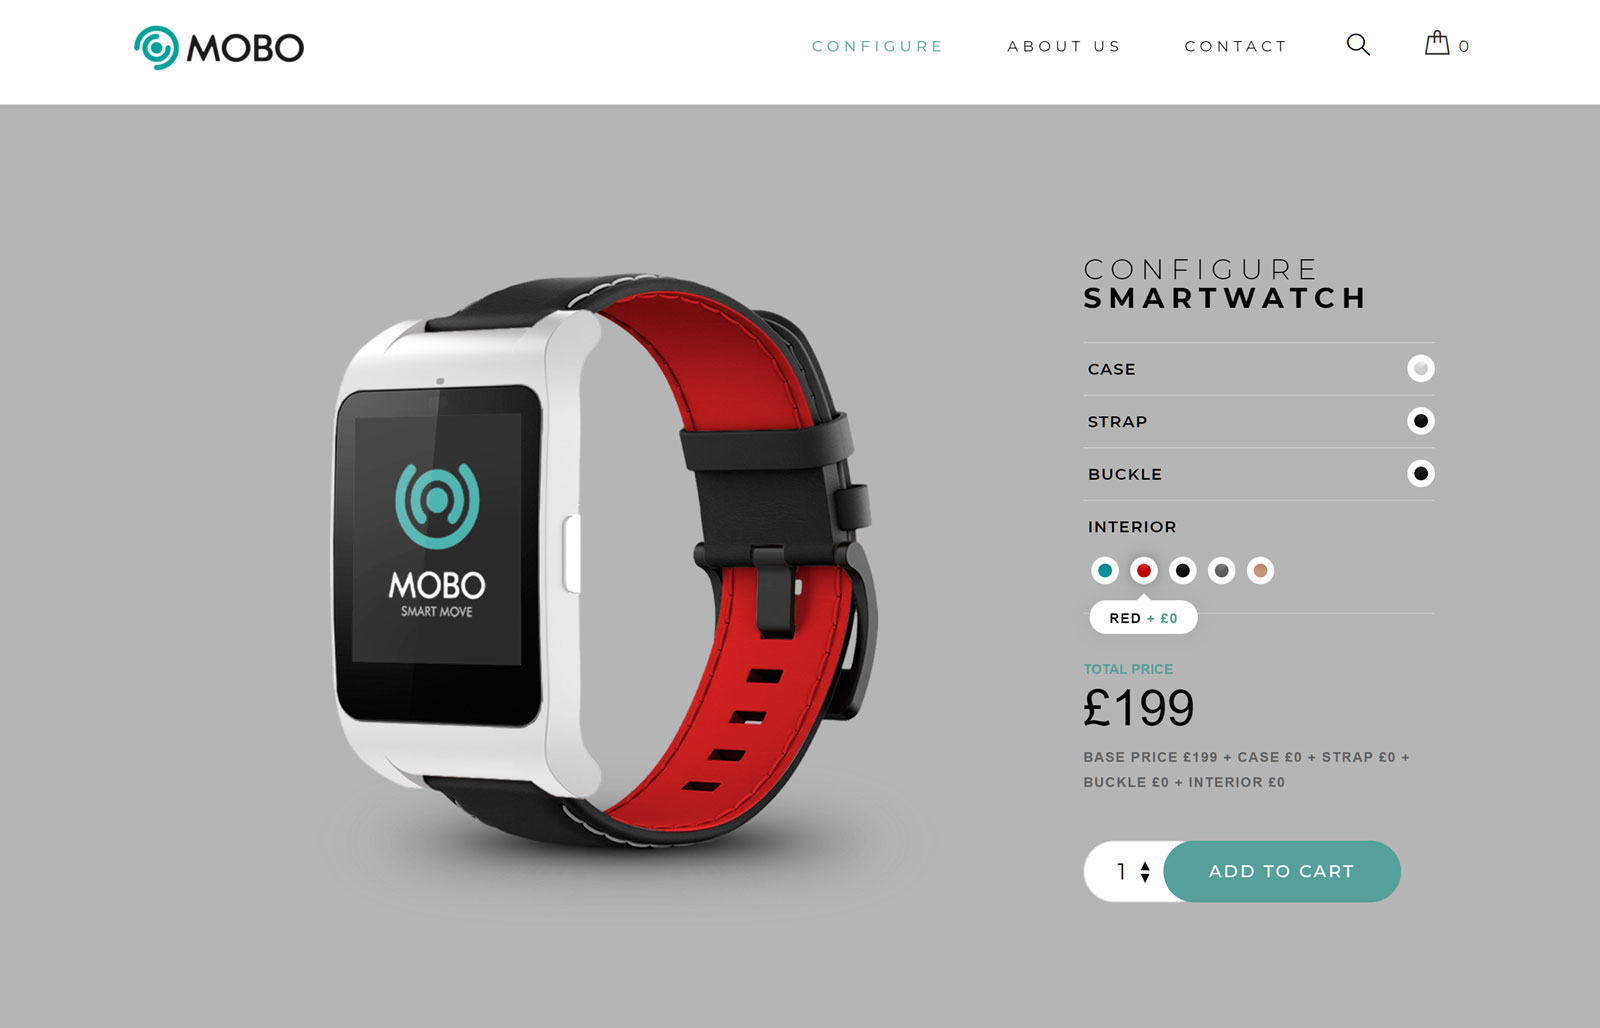 Smartwatch Product Demo